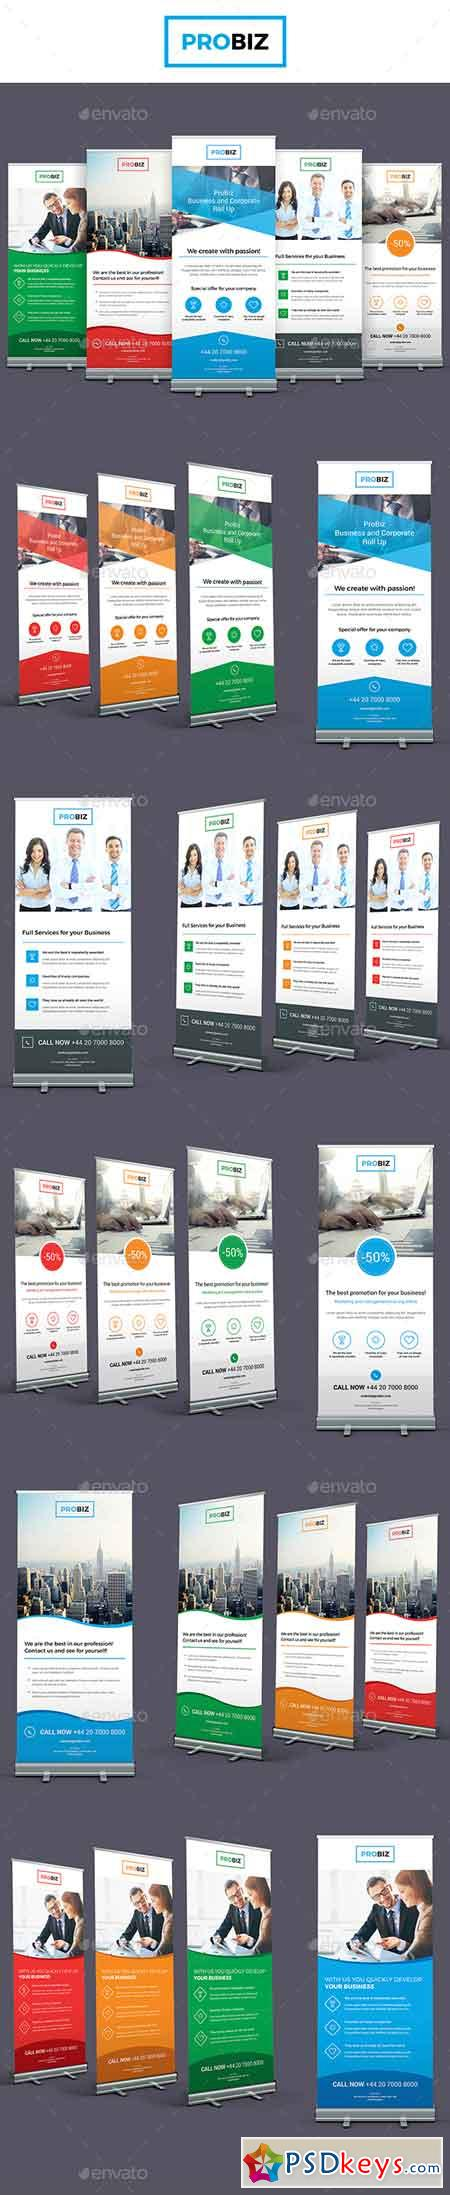 ProBiz – Business and Corporate Roll Up Banners 19314456